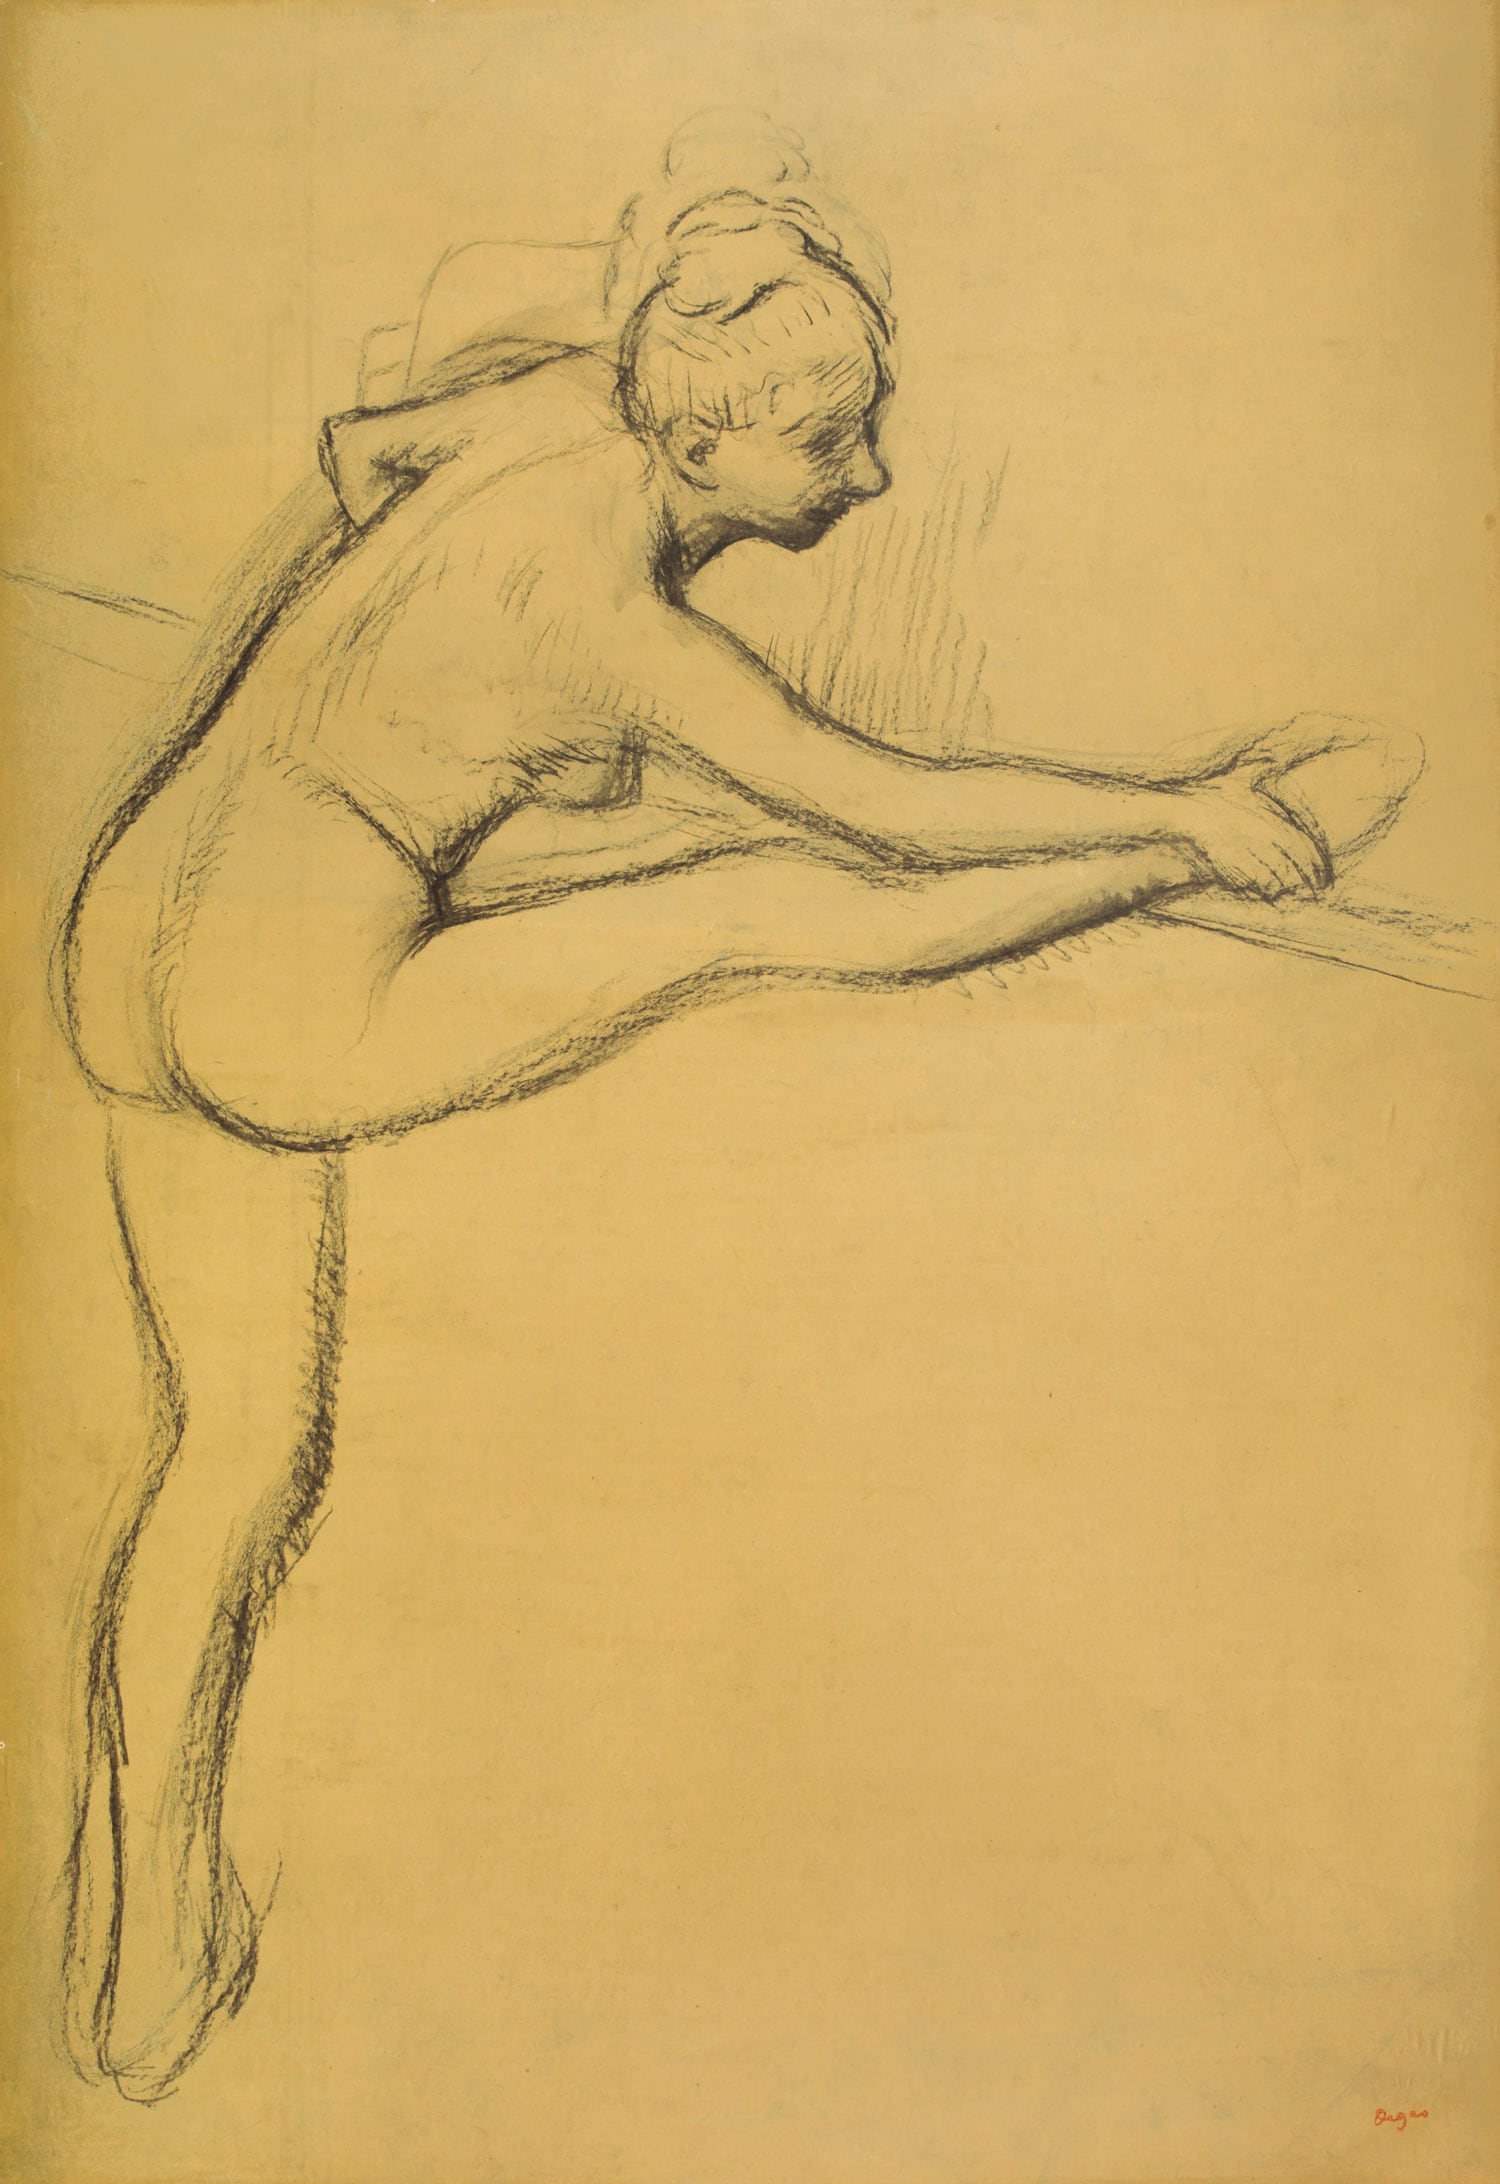 Edgar Degas (1834–1917), Étude de nu (danseuse à la barre). Estimate $400,000–600,000. This work is offered in the Impressionist & Modern Art Works on Paper sale on 14 May at Christie's in New York.The Collection of Drue Heinz.